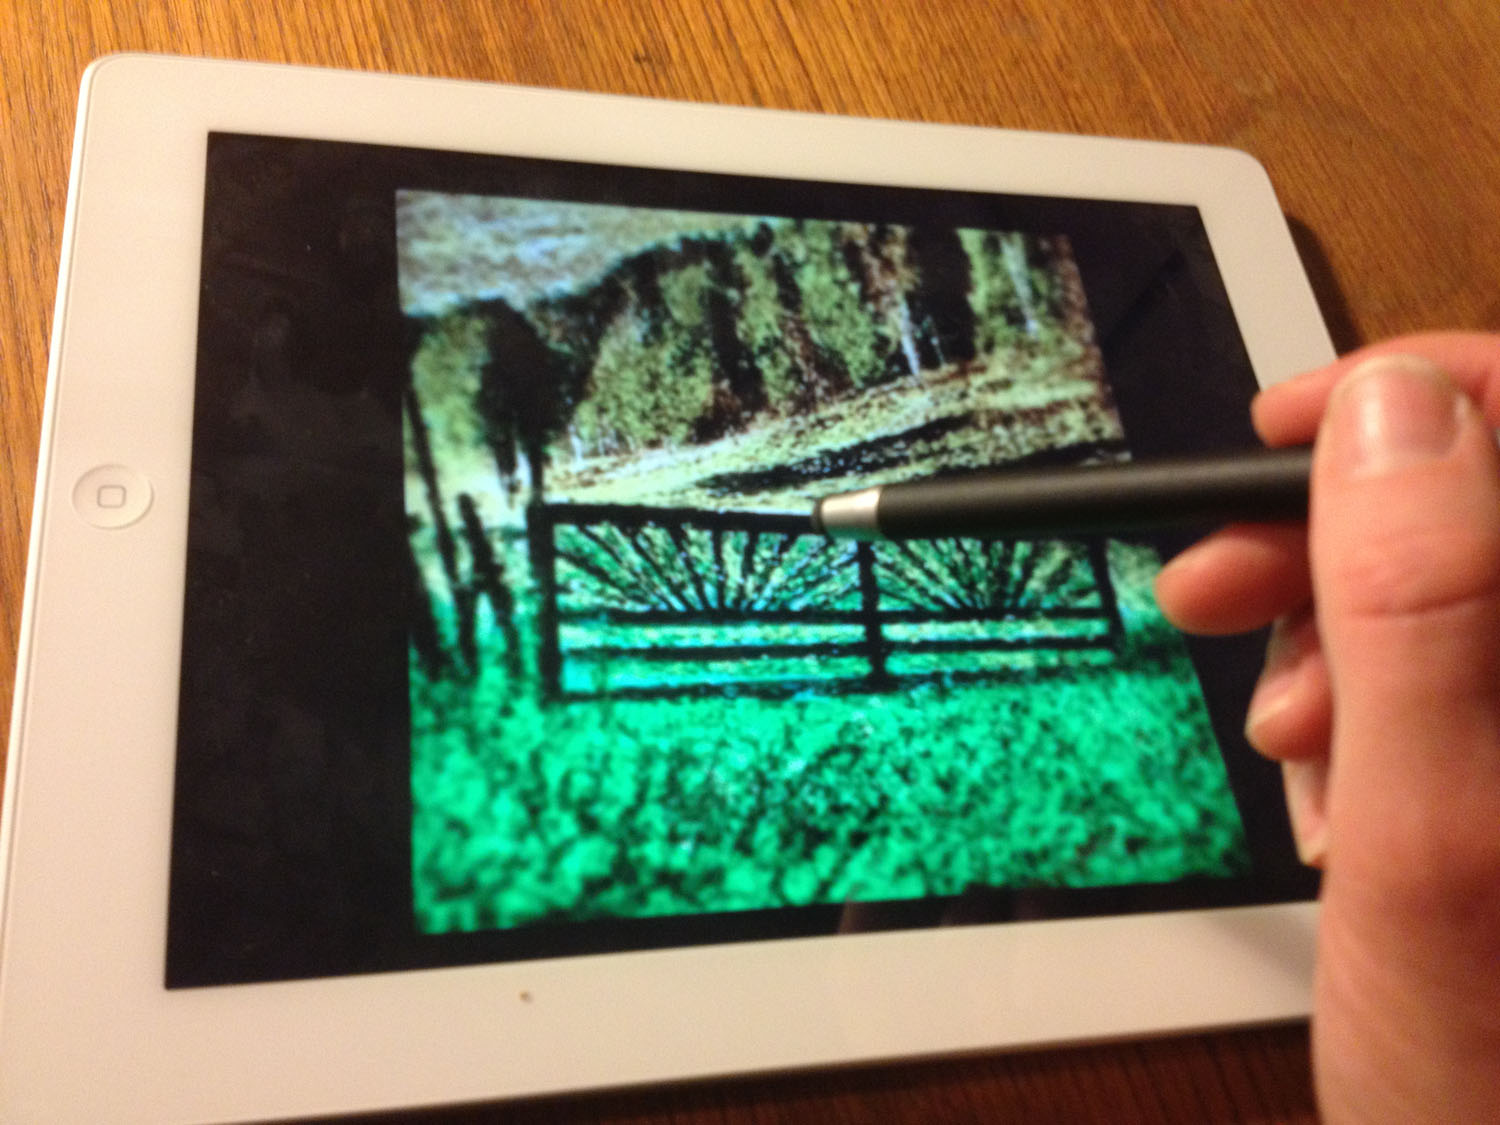 Using the iPad to create mobile art and photography. Photo: Anne Vilemsons.